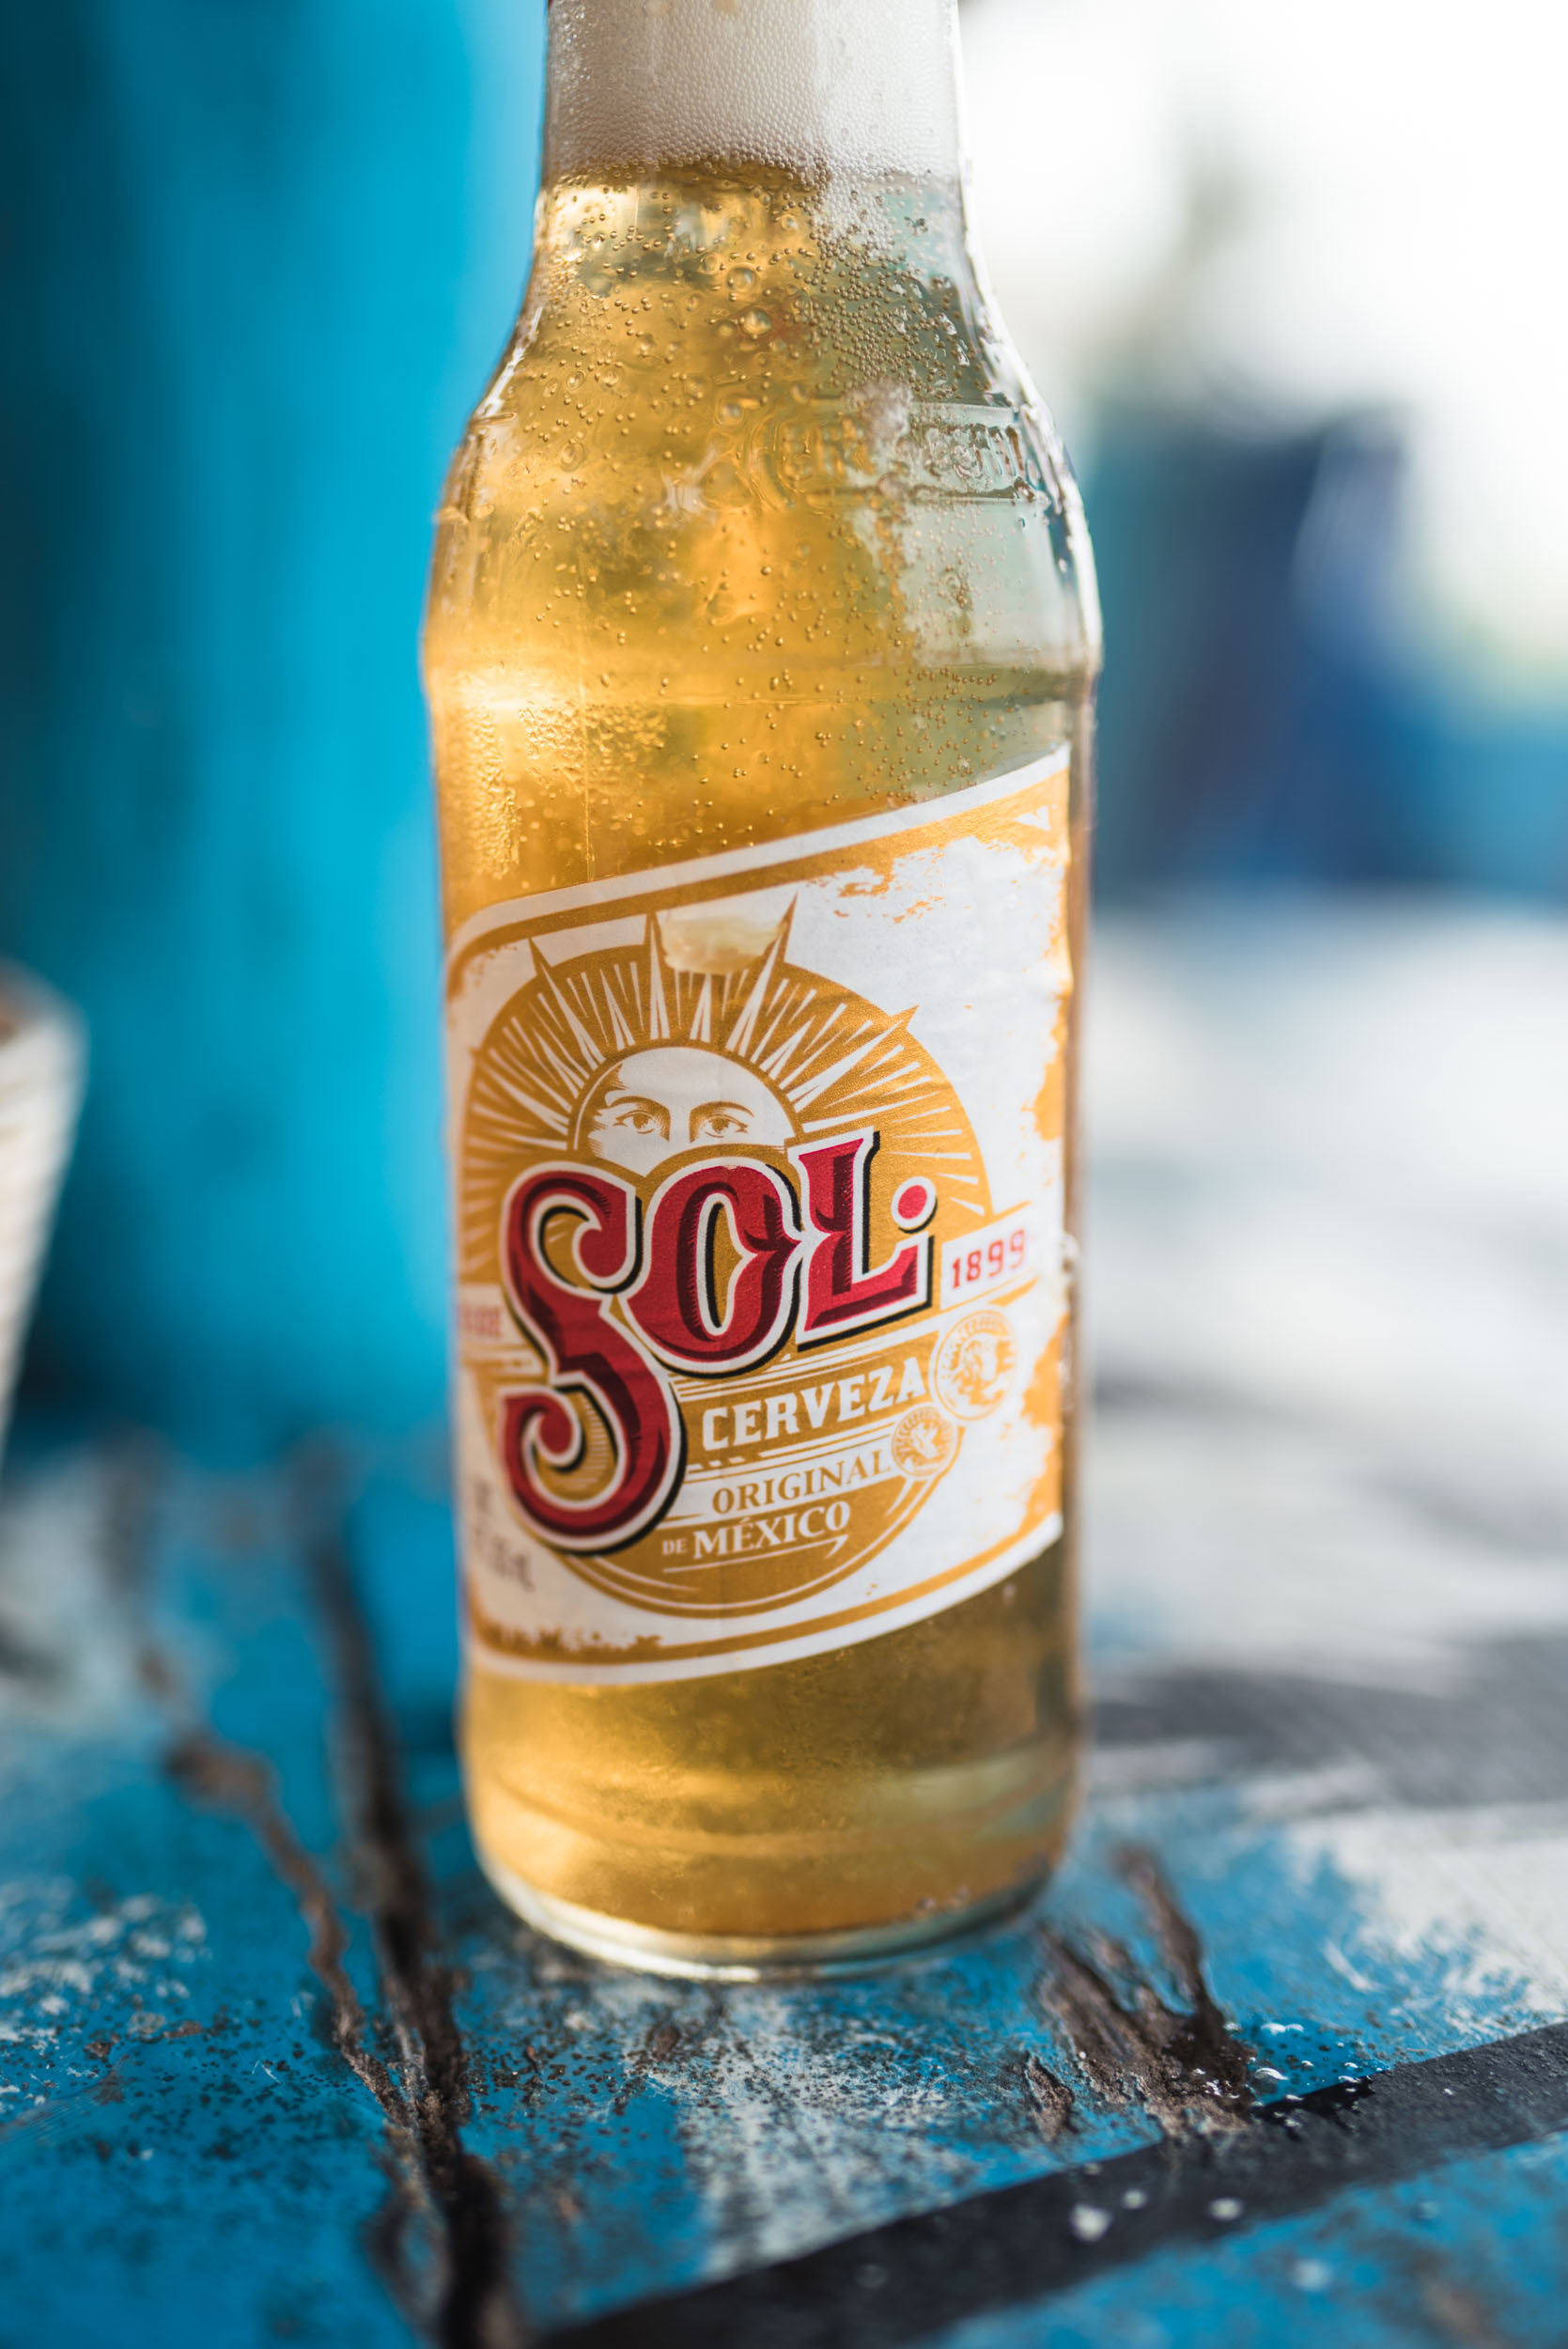 Sol beer bottle